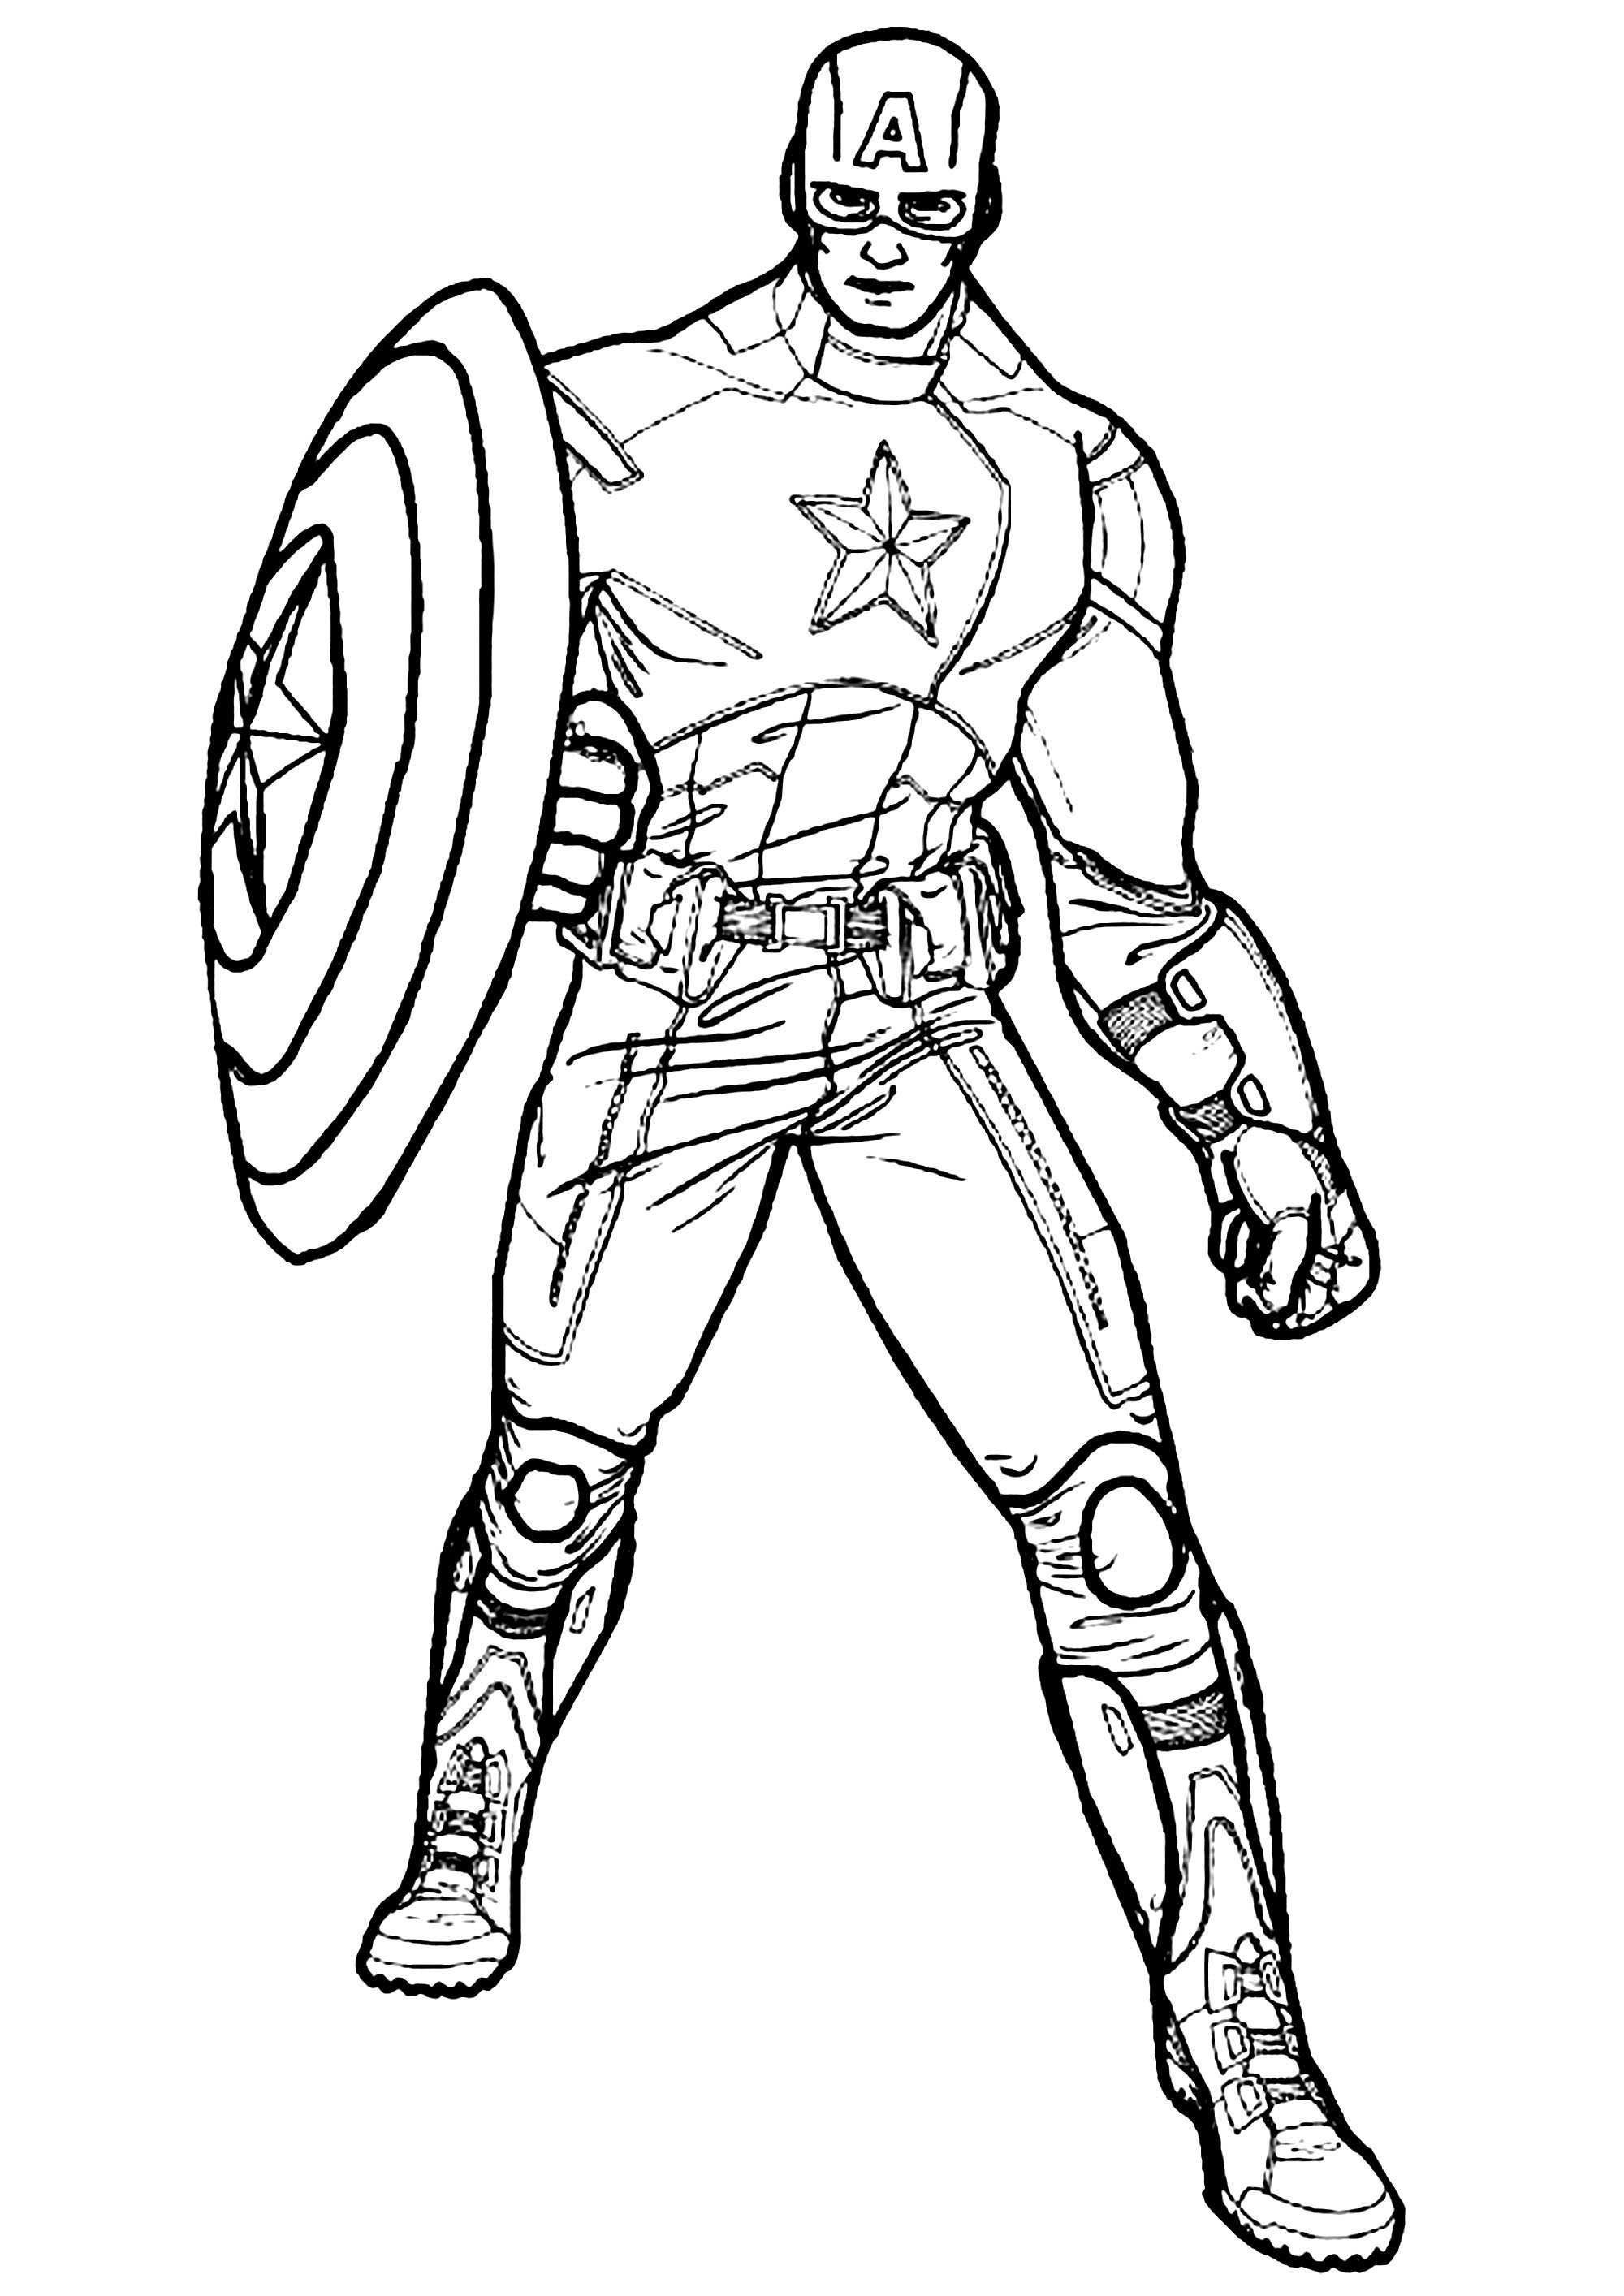 Captain America - Captain America Kids Coloring Pages